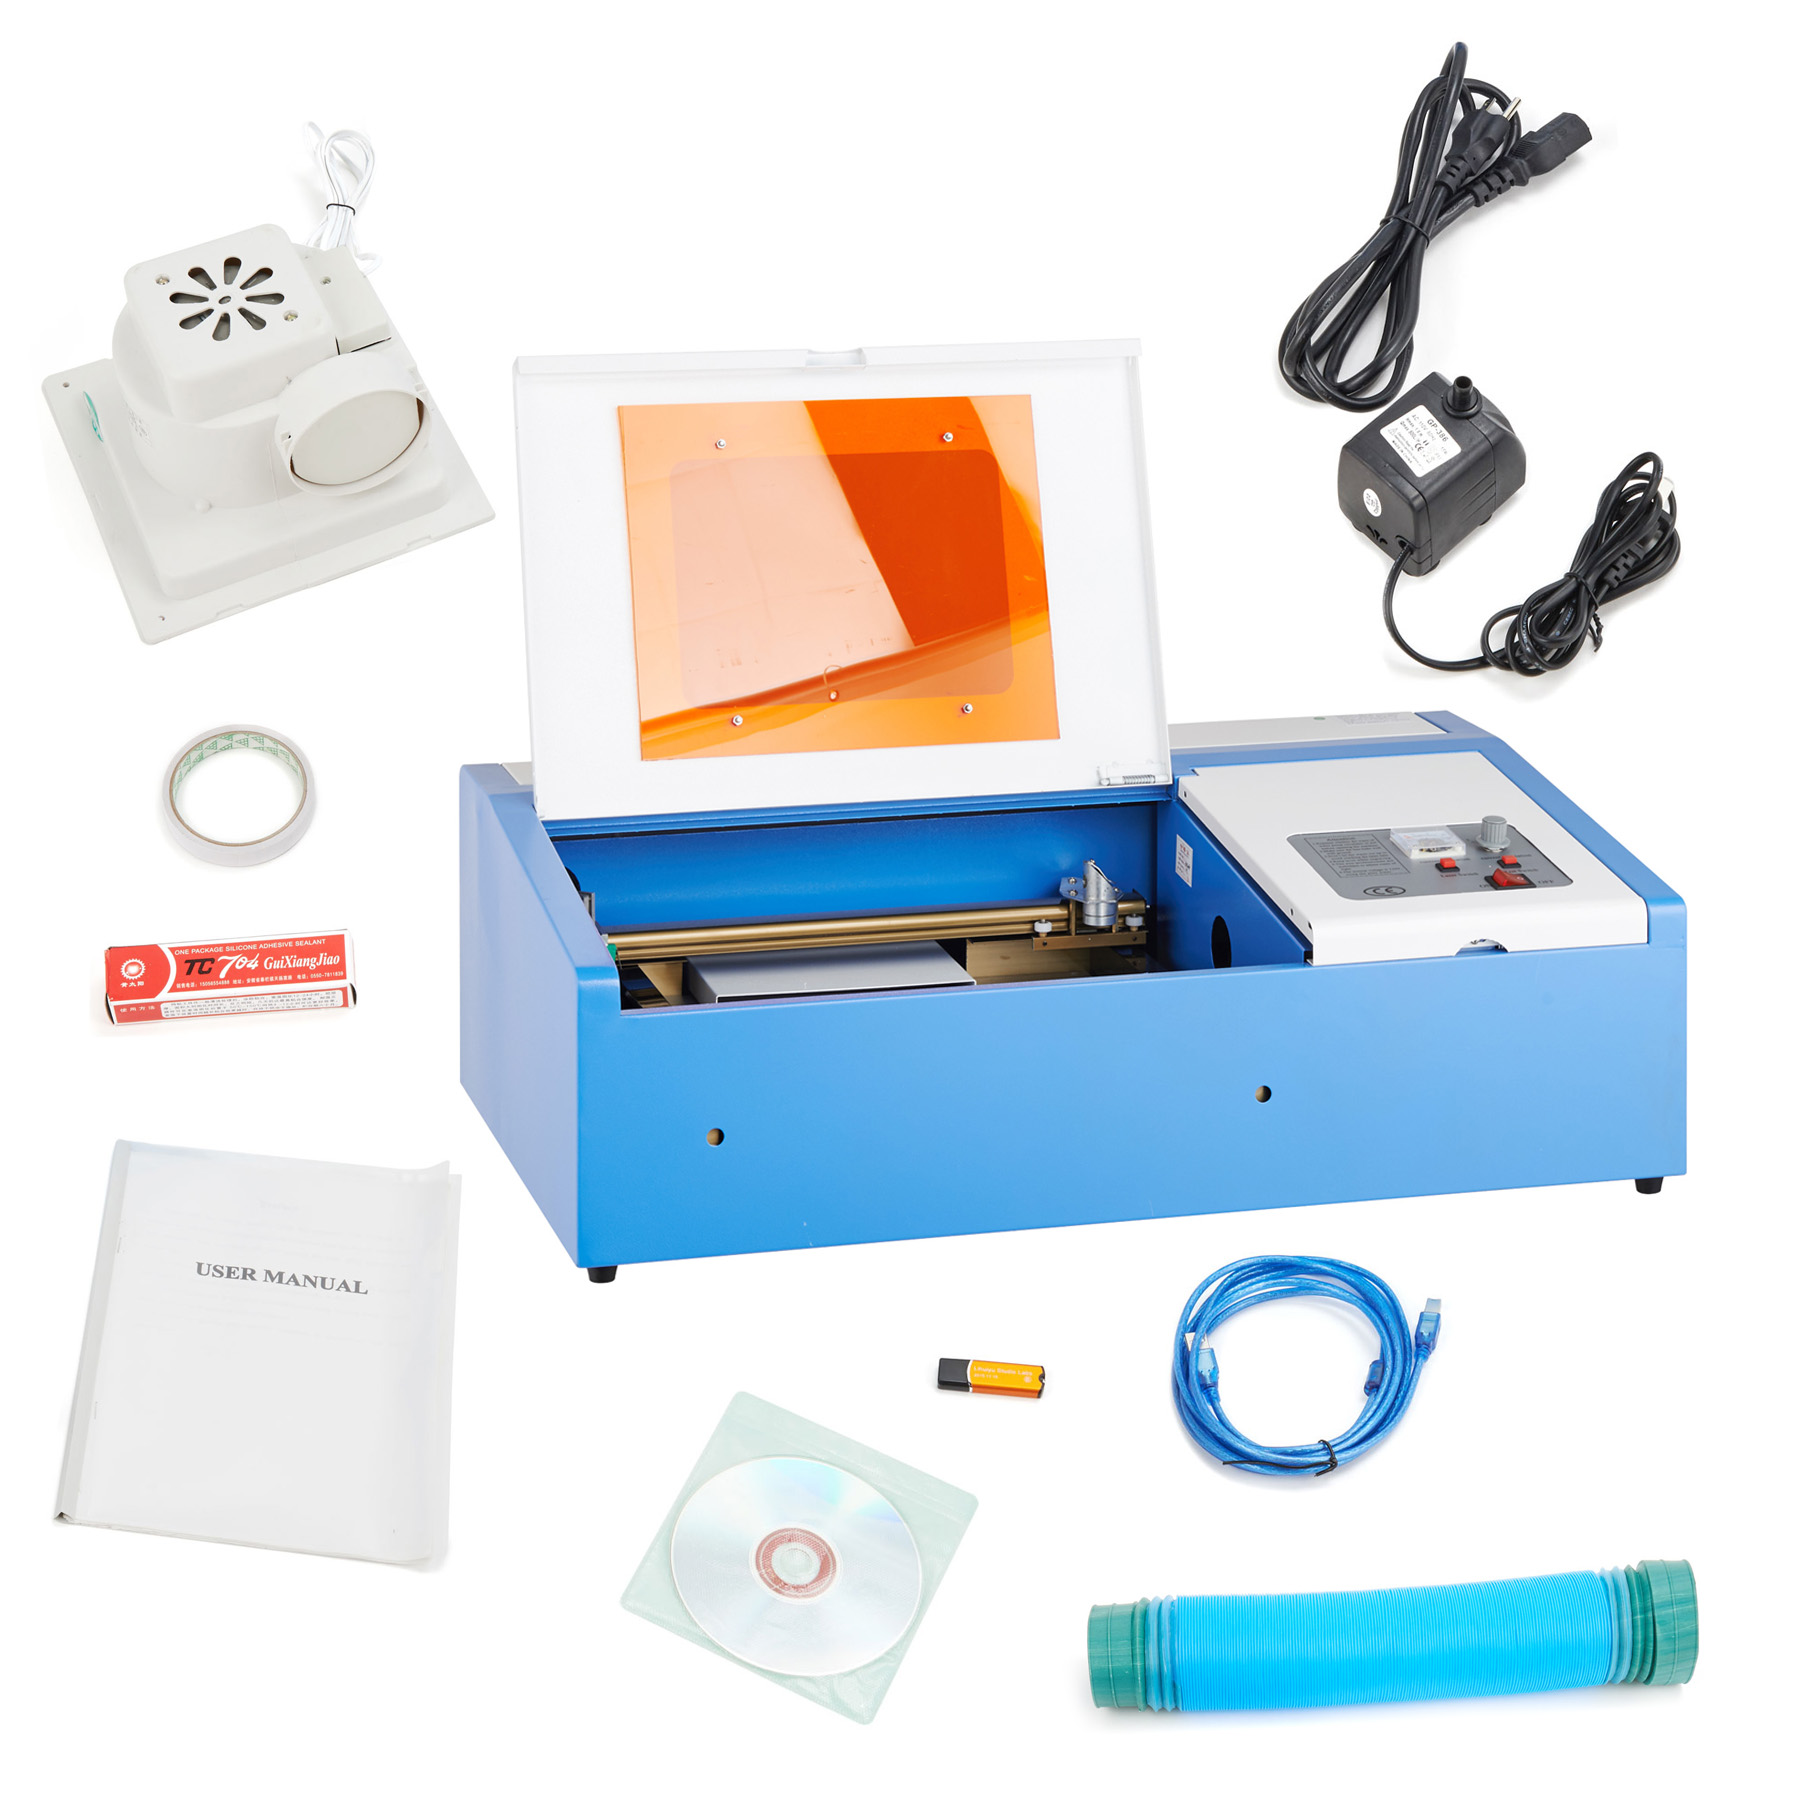 NEW 40W CO2 Laser Engraving Cut Machine Engraver Cutter USB Port High Precise